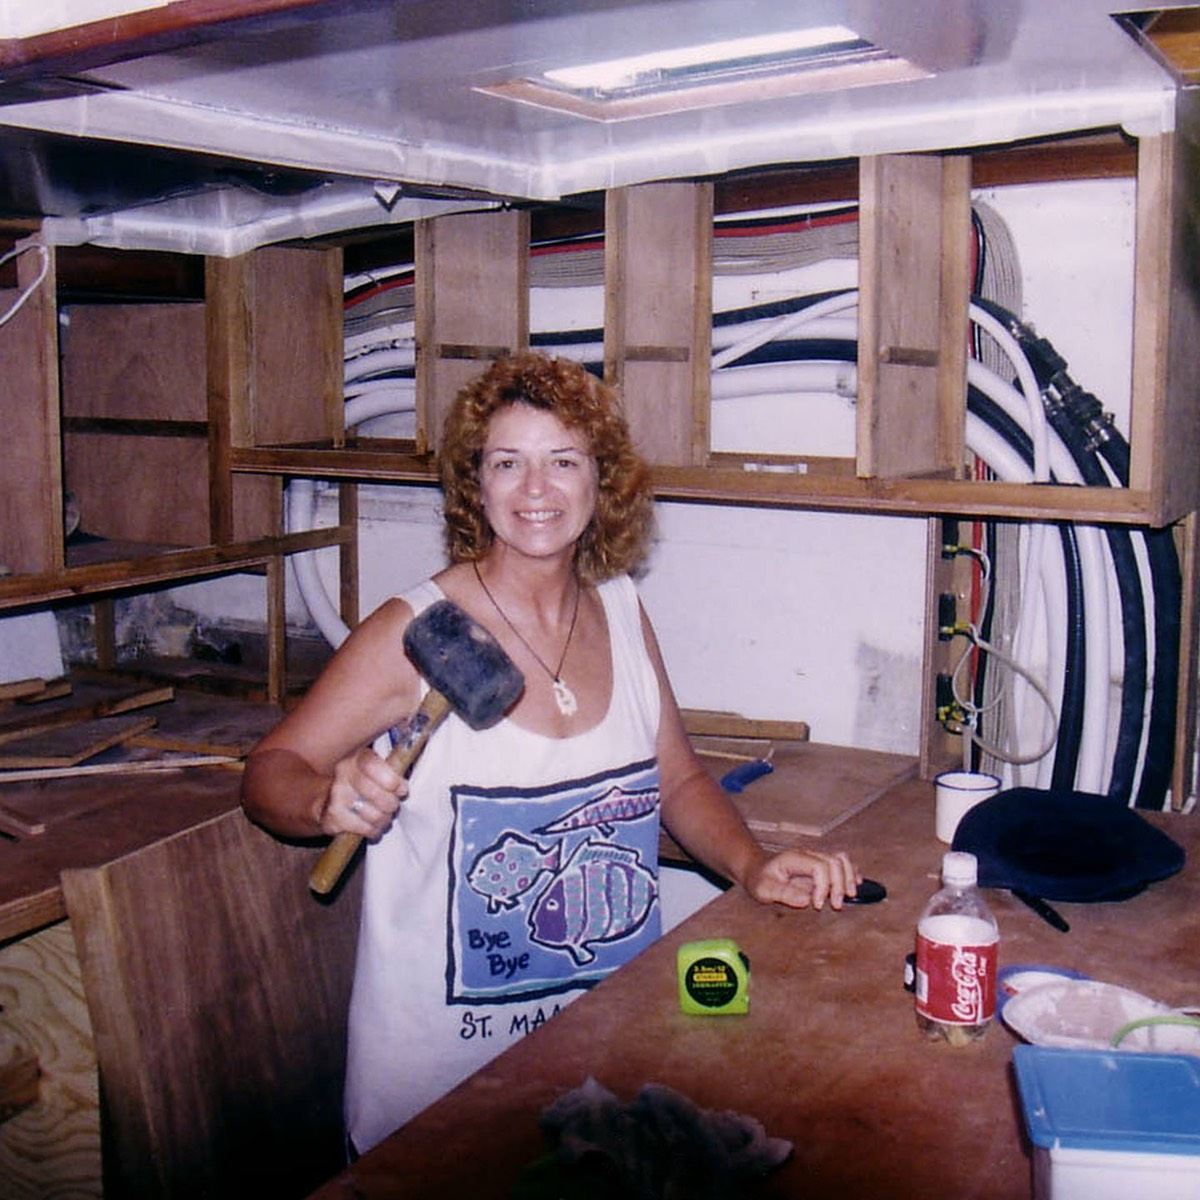 Vesta with a hammer working on building the galley in Great White Wonder, the sailboat we lived on in the Caribbean for ten years.